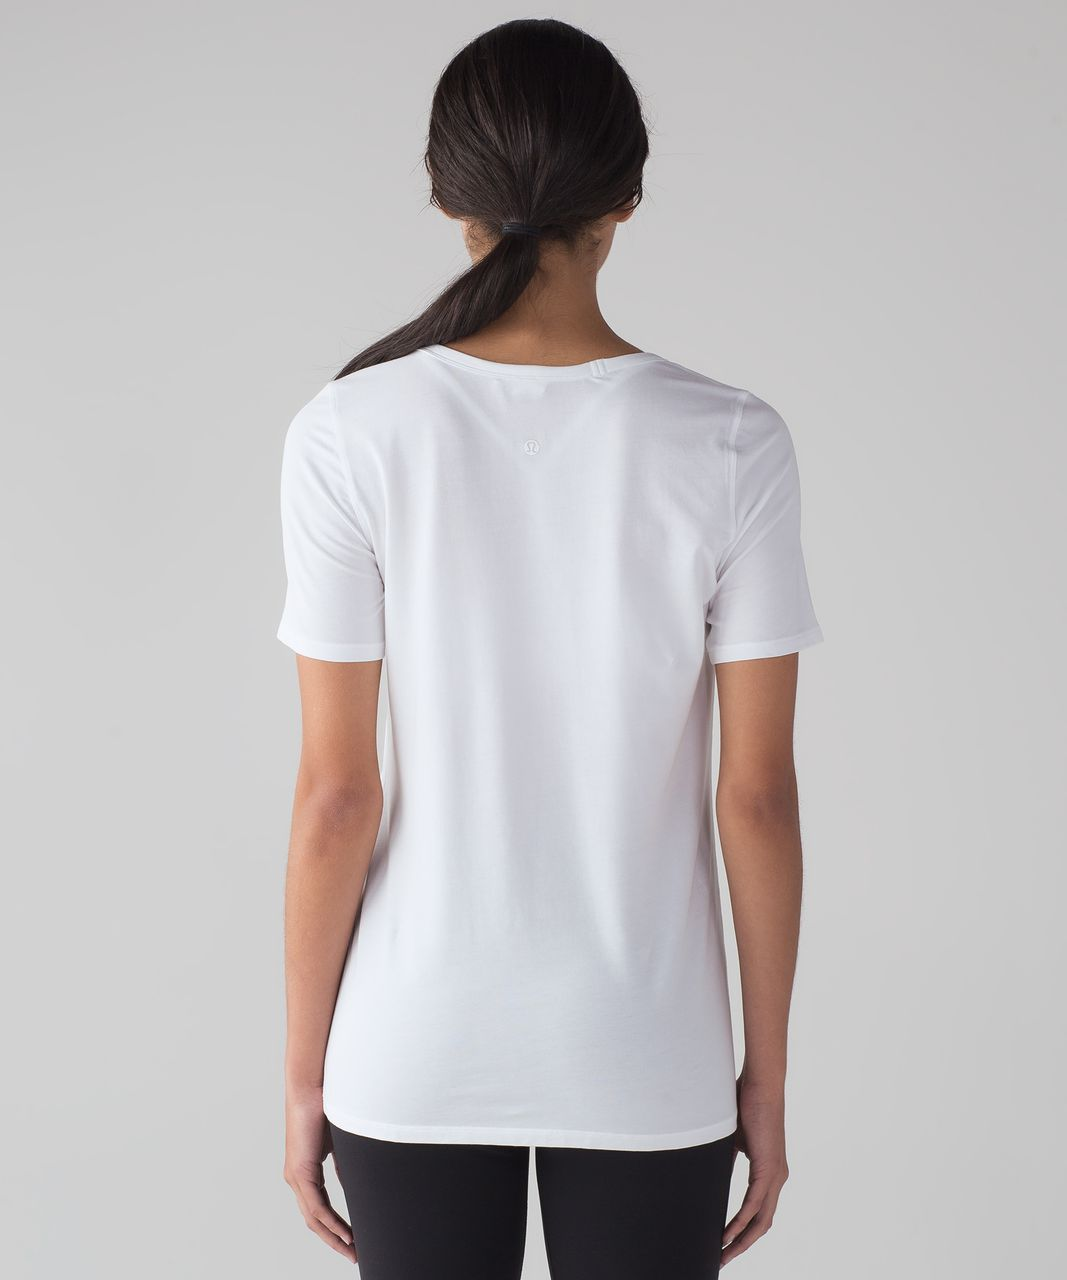 Lululemon Love Crew (Expression) - White